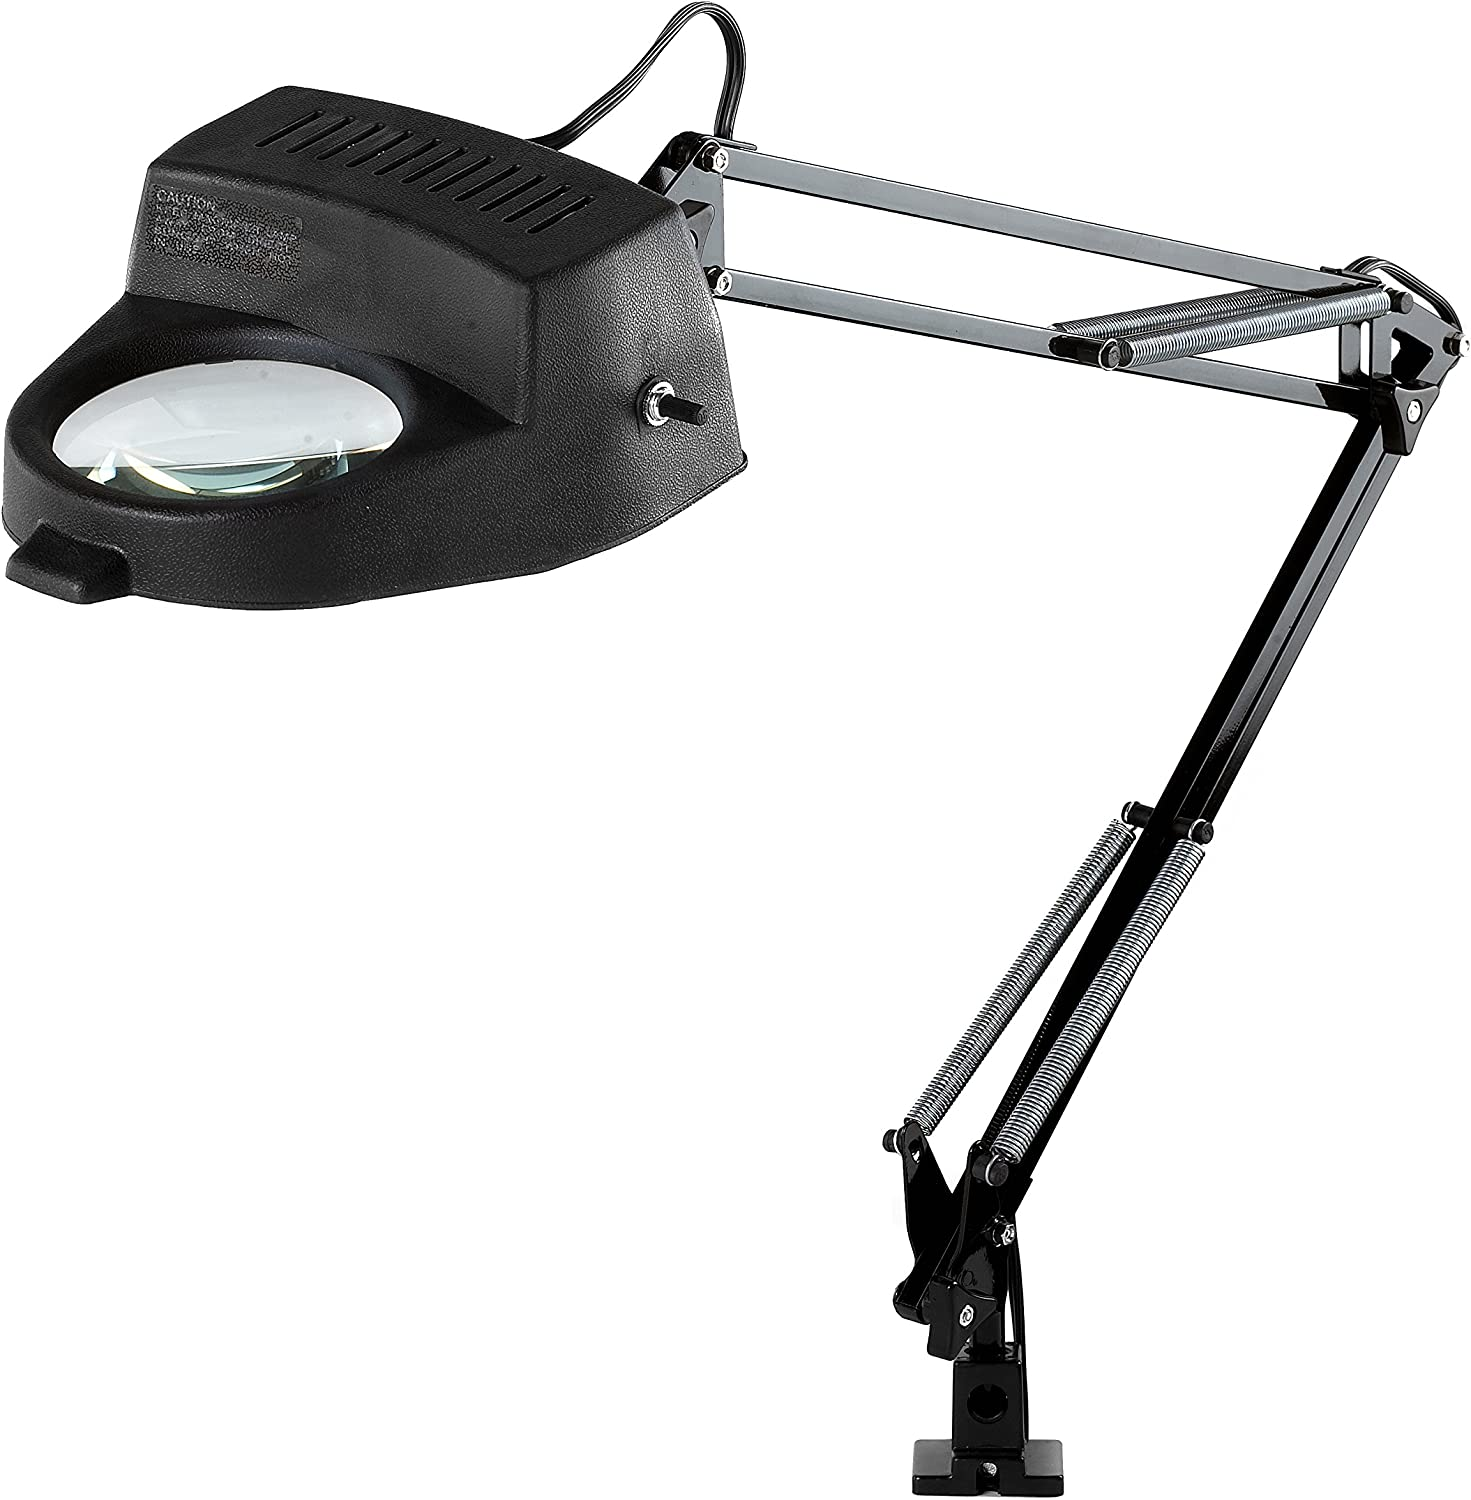 Electrix 7268 BLACK Magnifier Lamp, Incandescent, Clampon Mounting, 3Diopter, 33  Reach, 60W